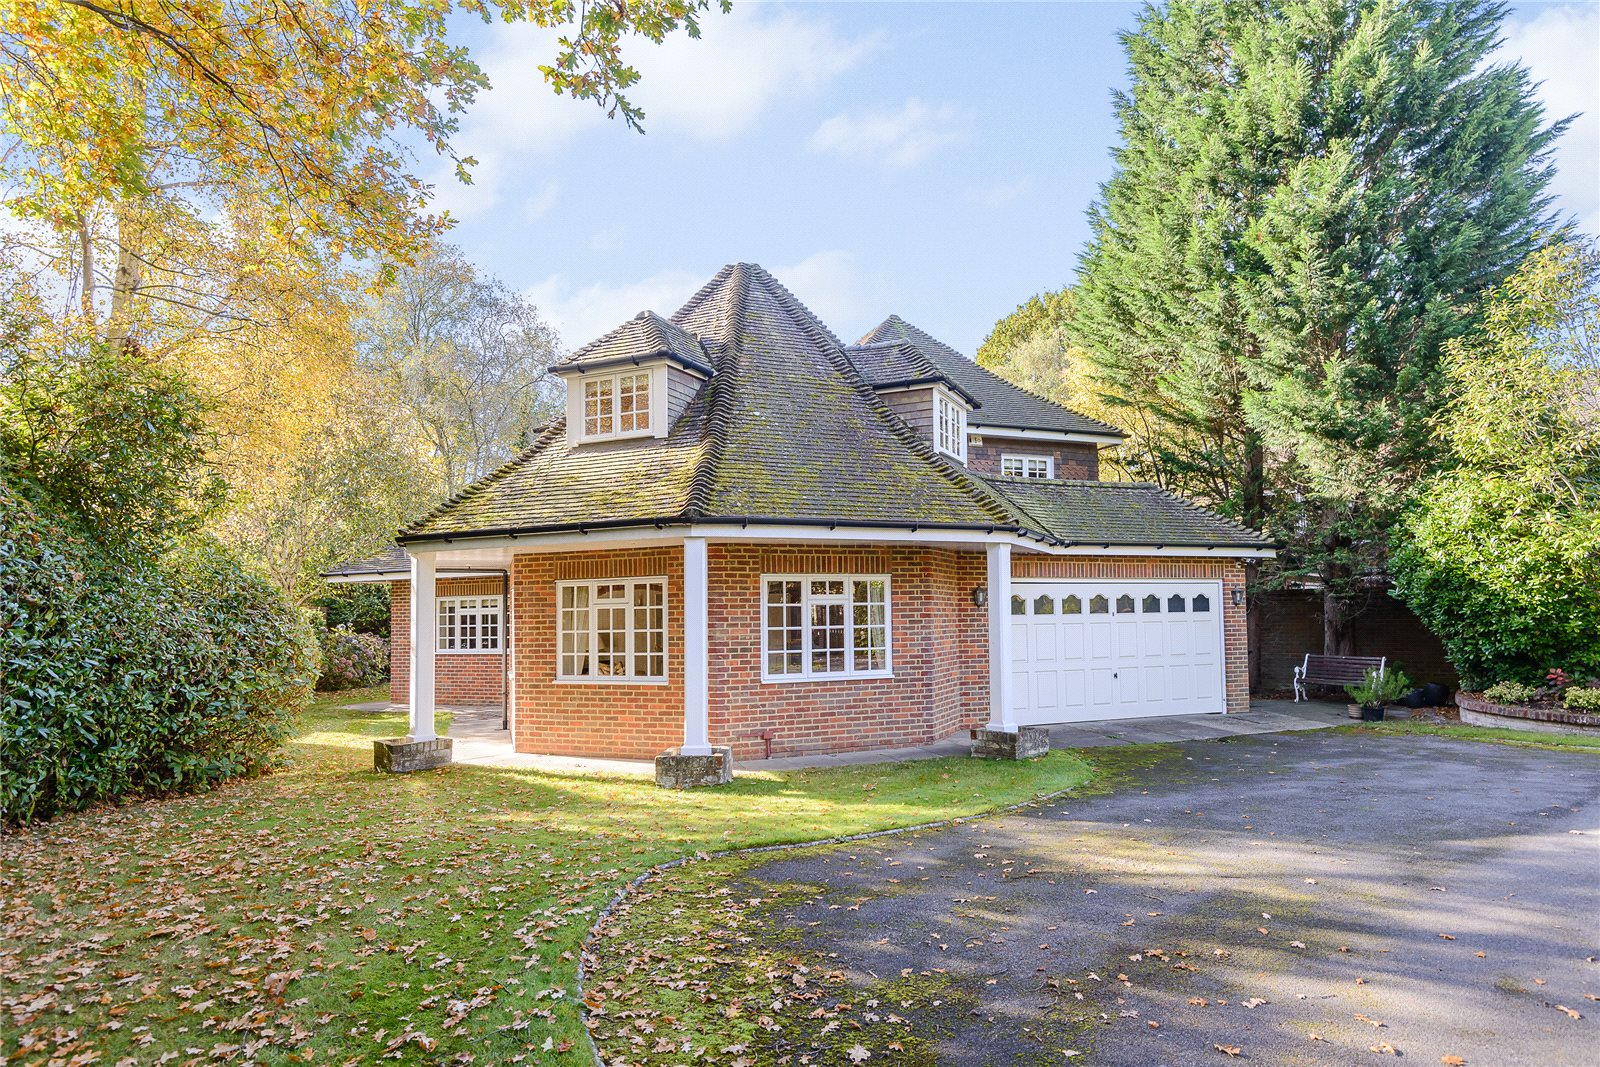 Casa Unifamiliar por un Venta en Dukes Wood Drive, Gerrards Cross, Buckinghamshire, SL9 Gerrards Cross, Inglaterra